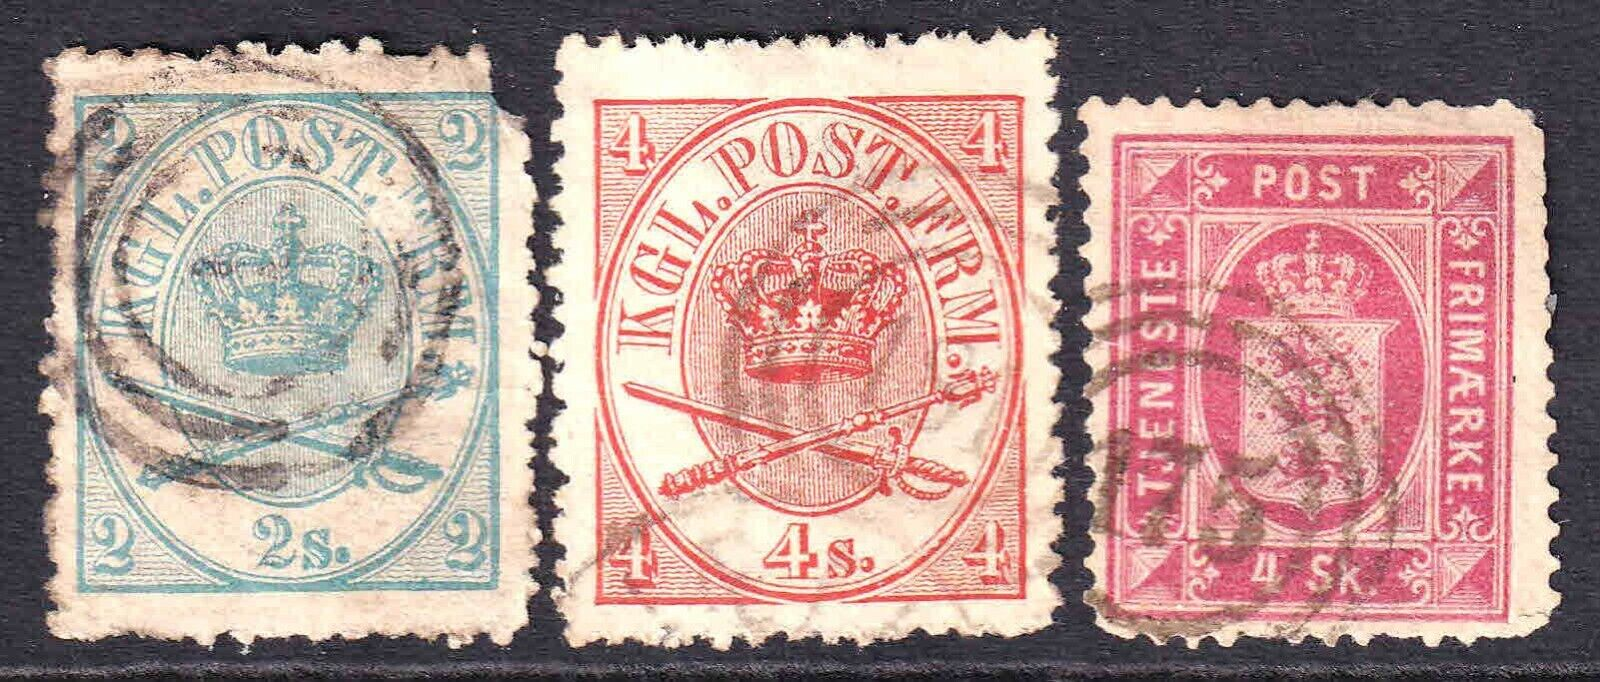 DENMARK EARLY ISSUES INCLUDING O2 40 COLLECTION LOT - $4.99